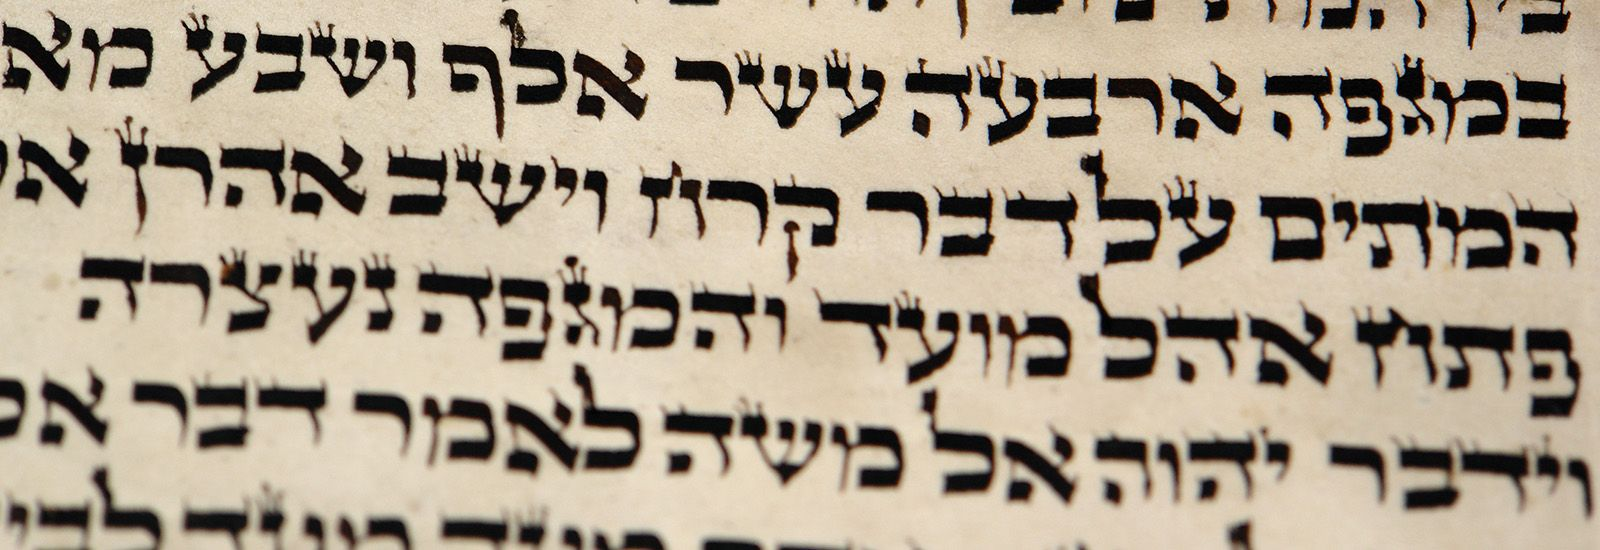 A close-up of Biblical text in Hebrew